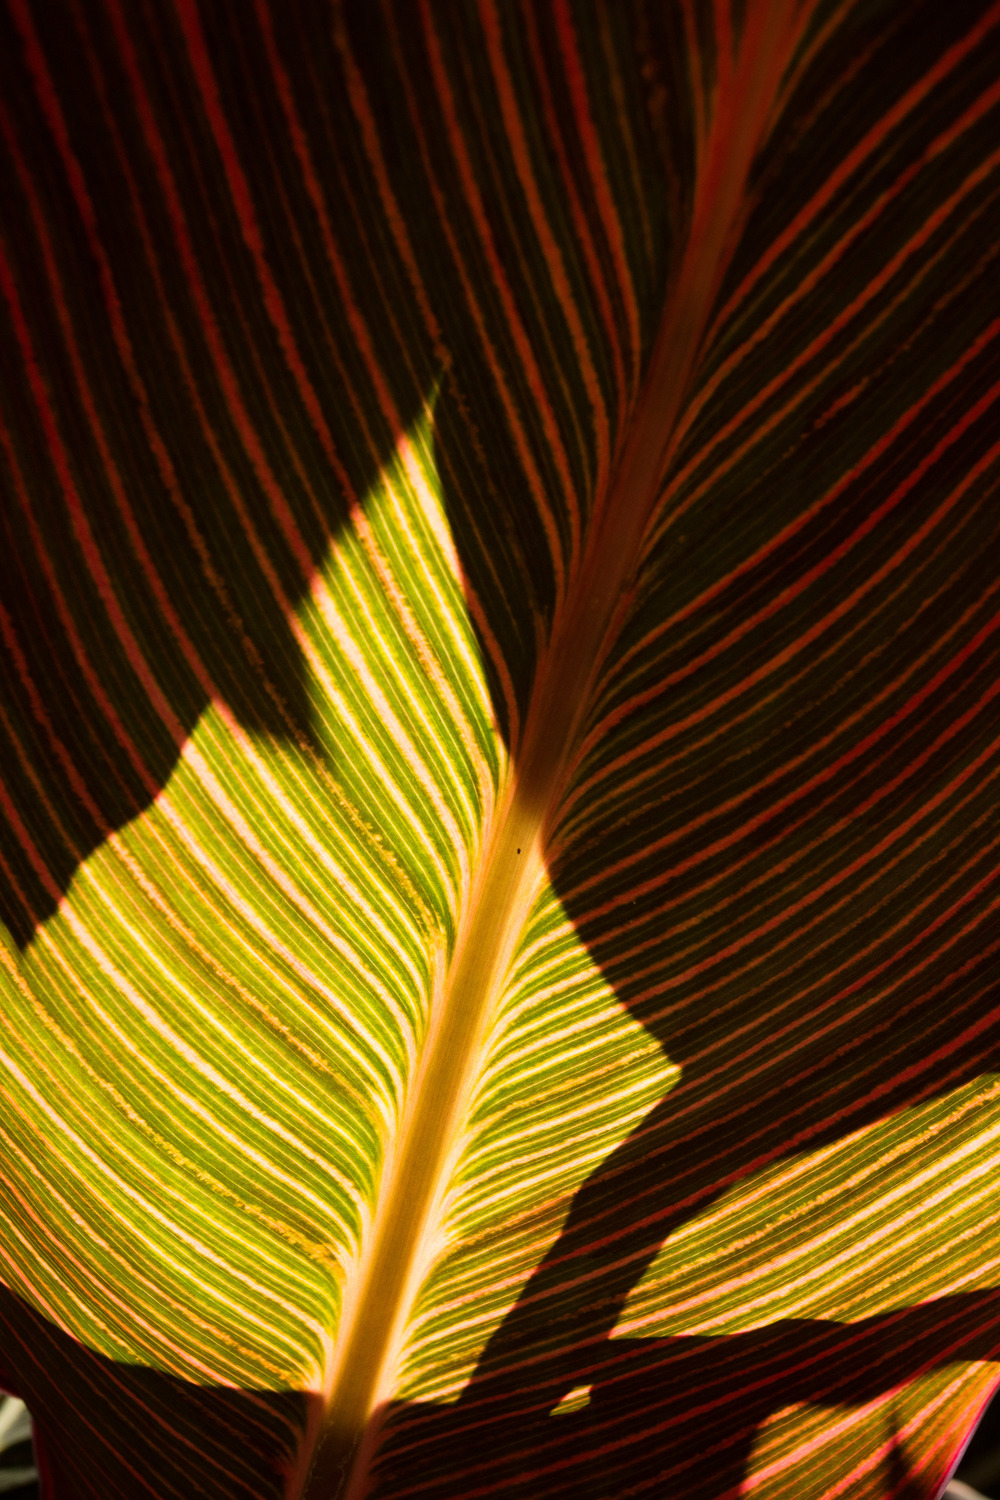 Shadows and patterns on a backlit leaf.